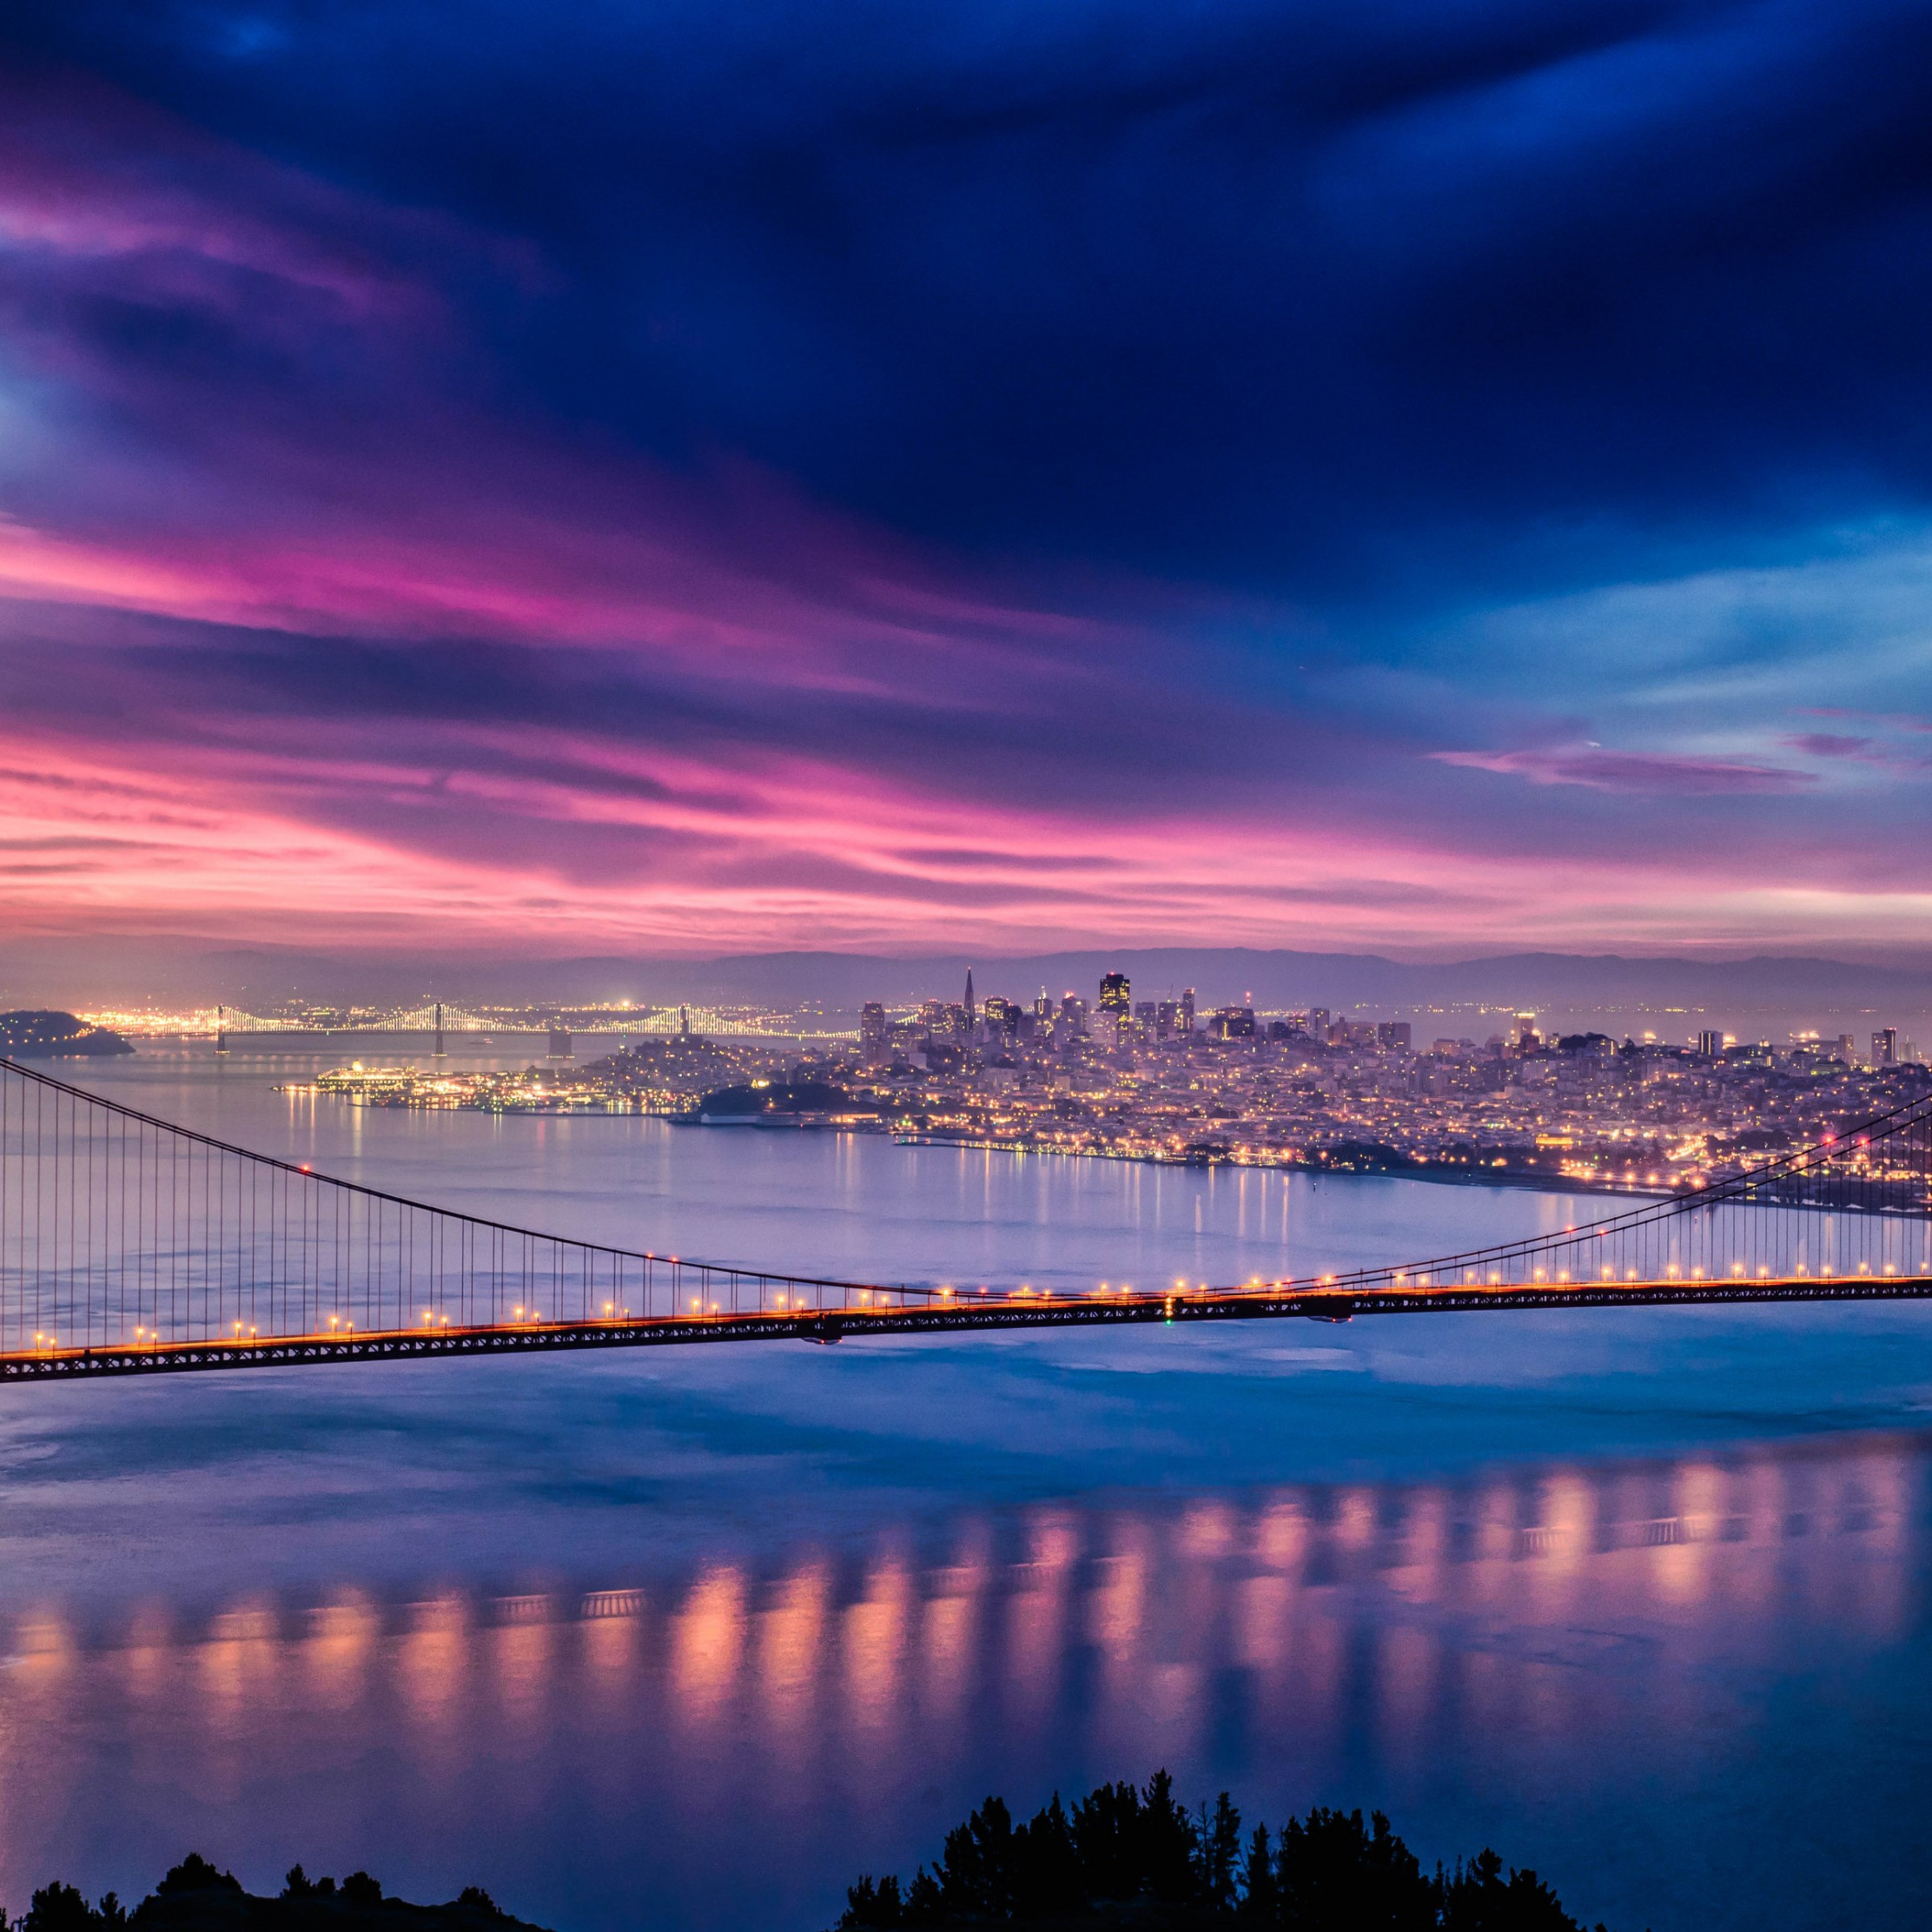 Skyfire over San Francisco Bay Bridge wallpaper 2224x2224